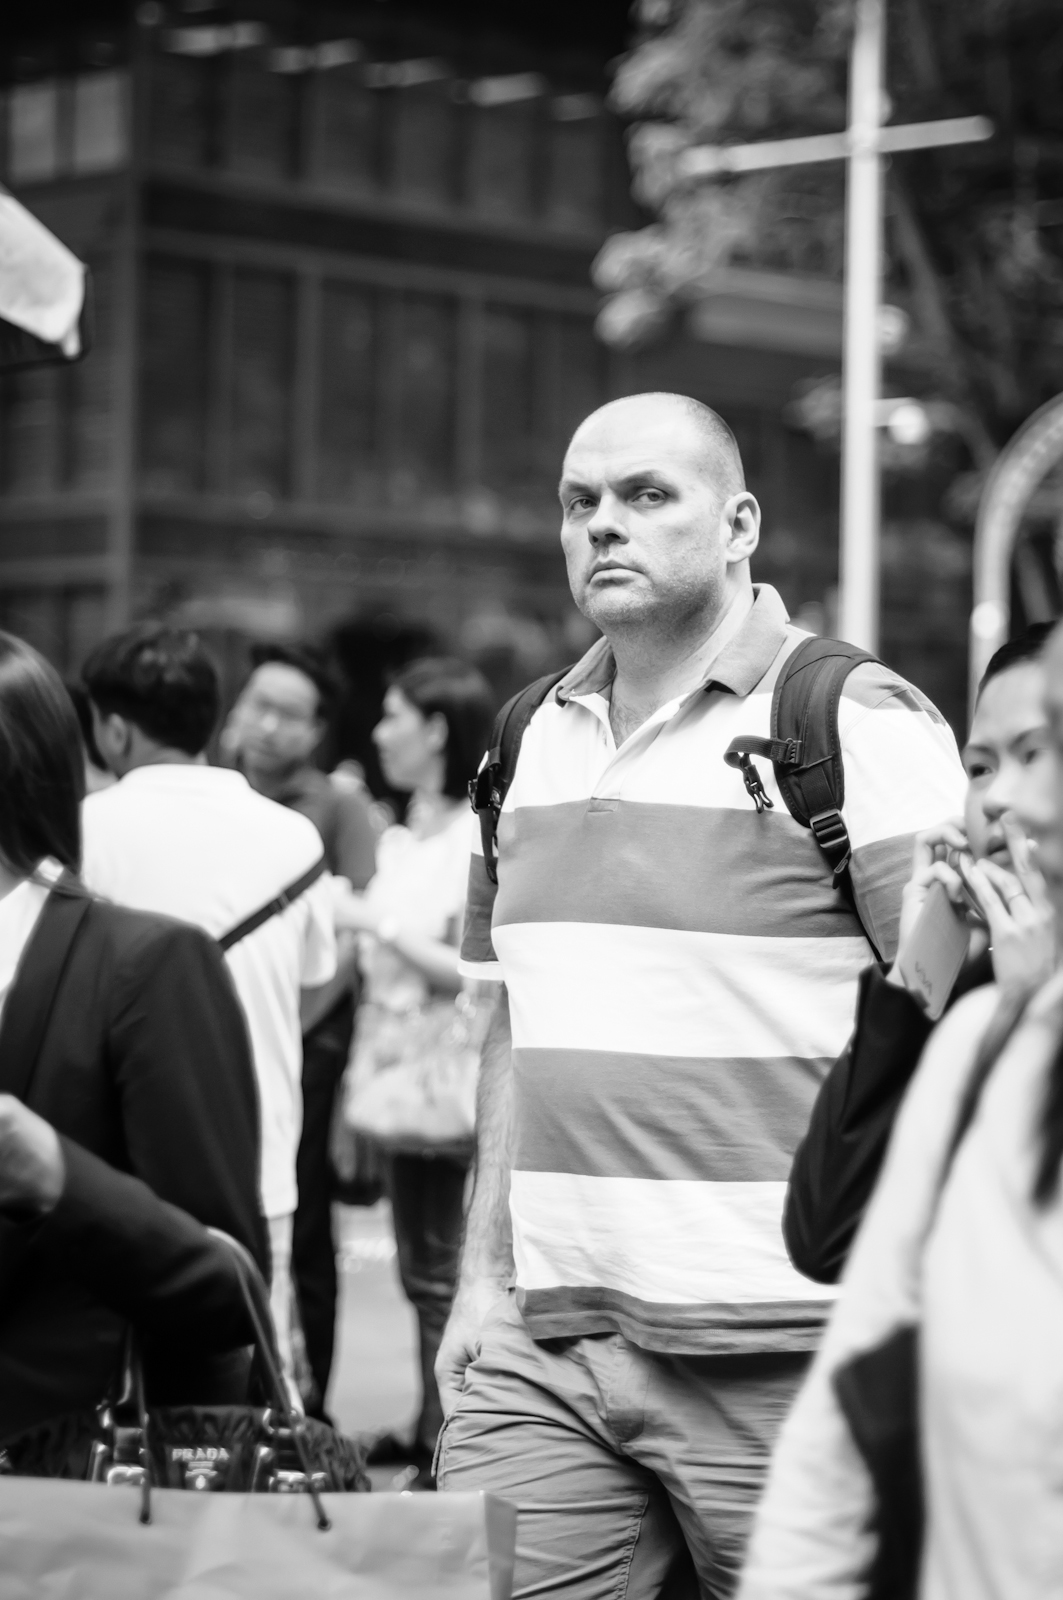 Street photography - man in broad-striped polo t-shirt looking at the camera